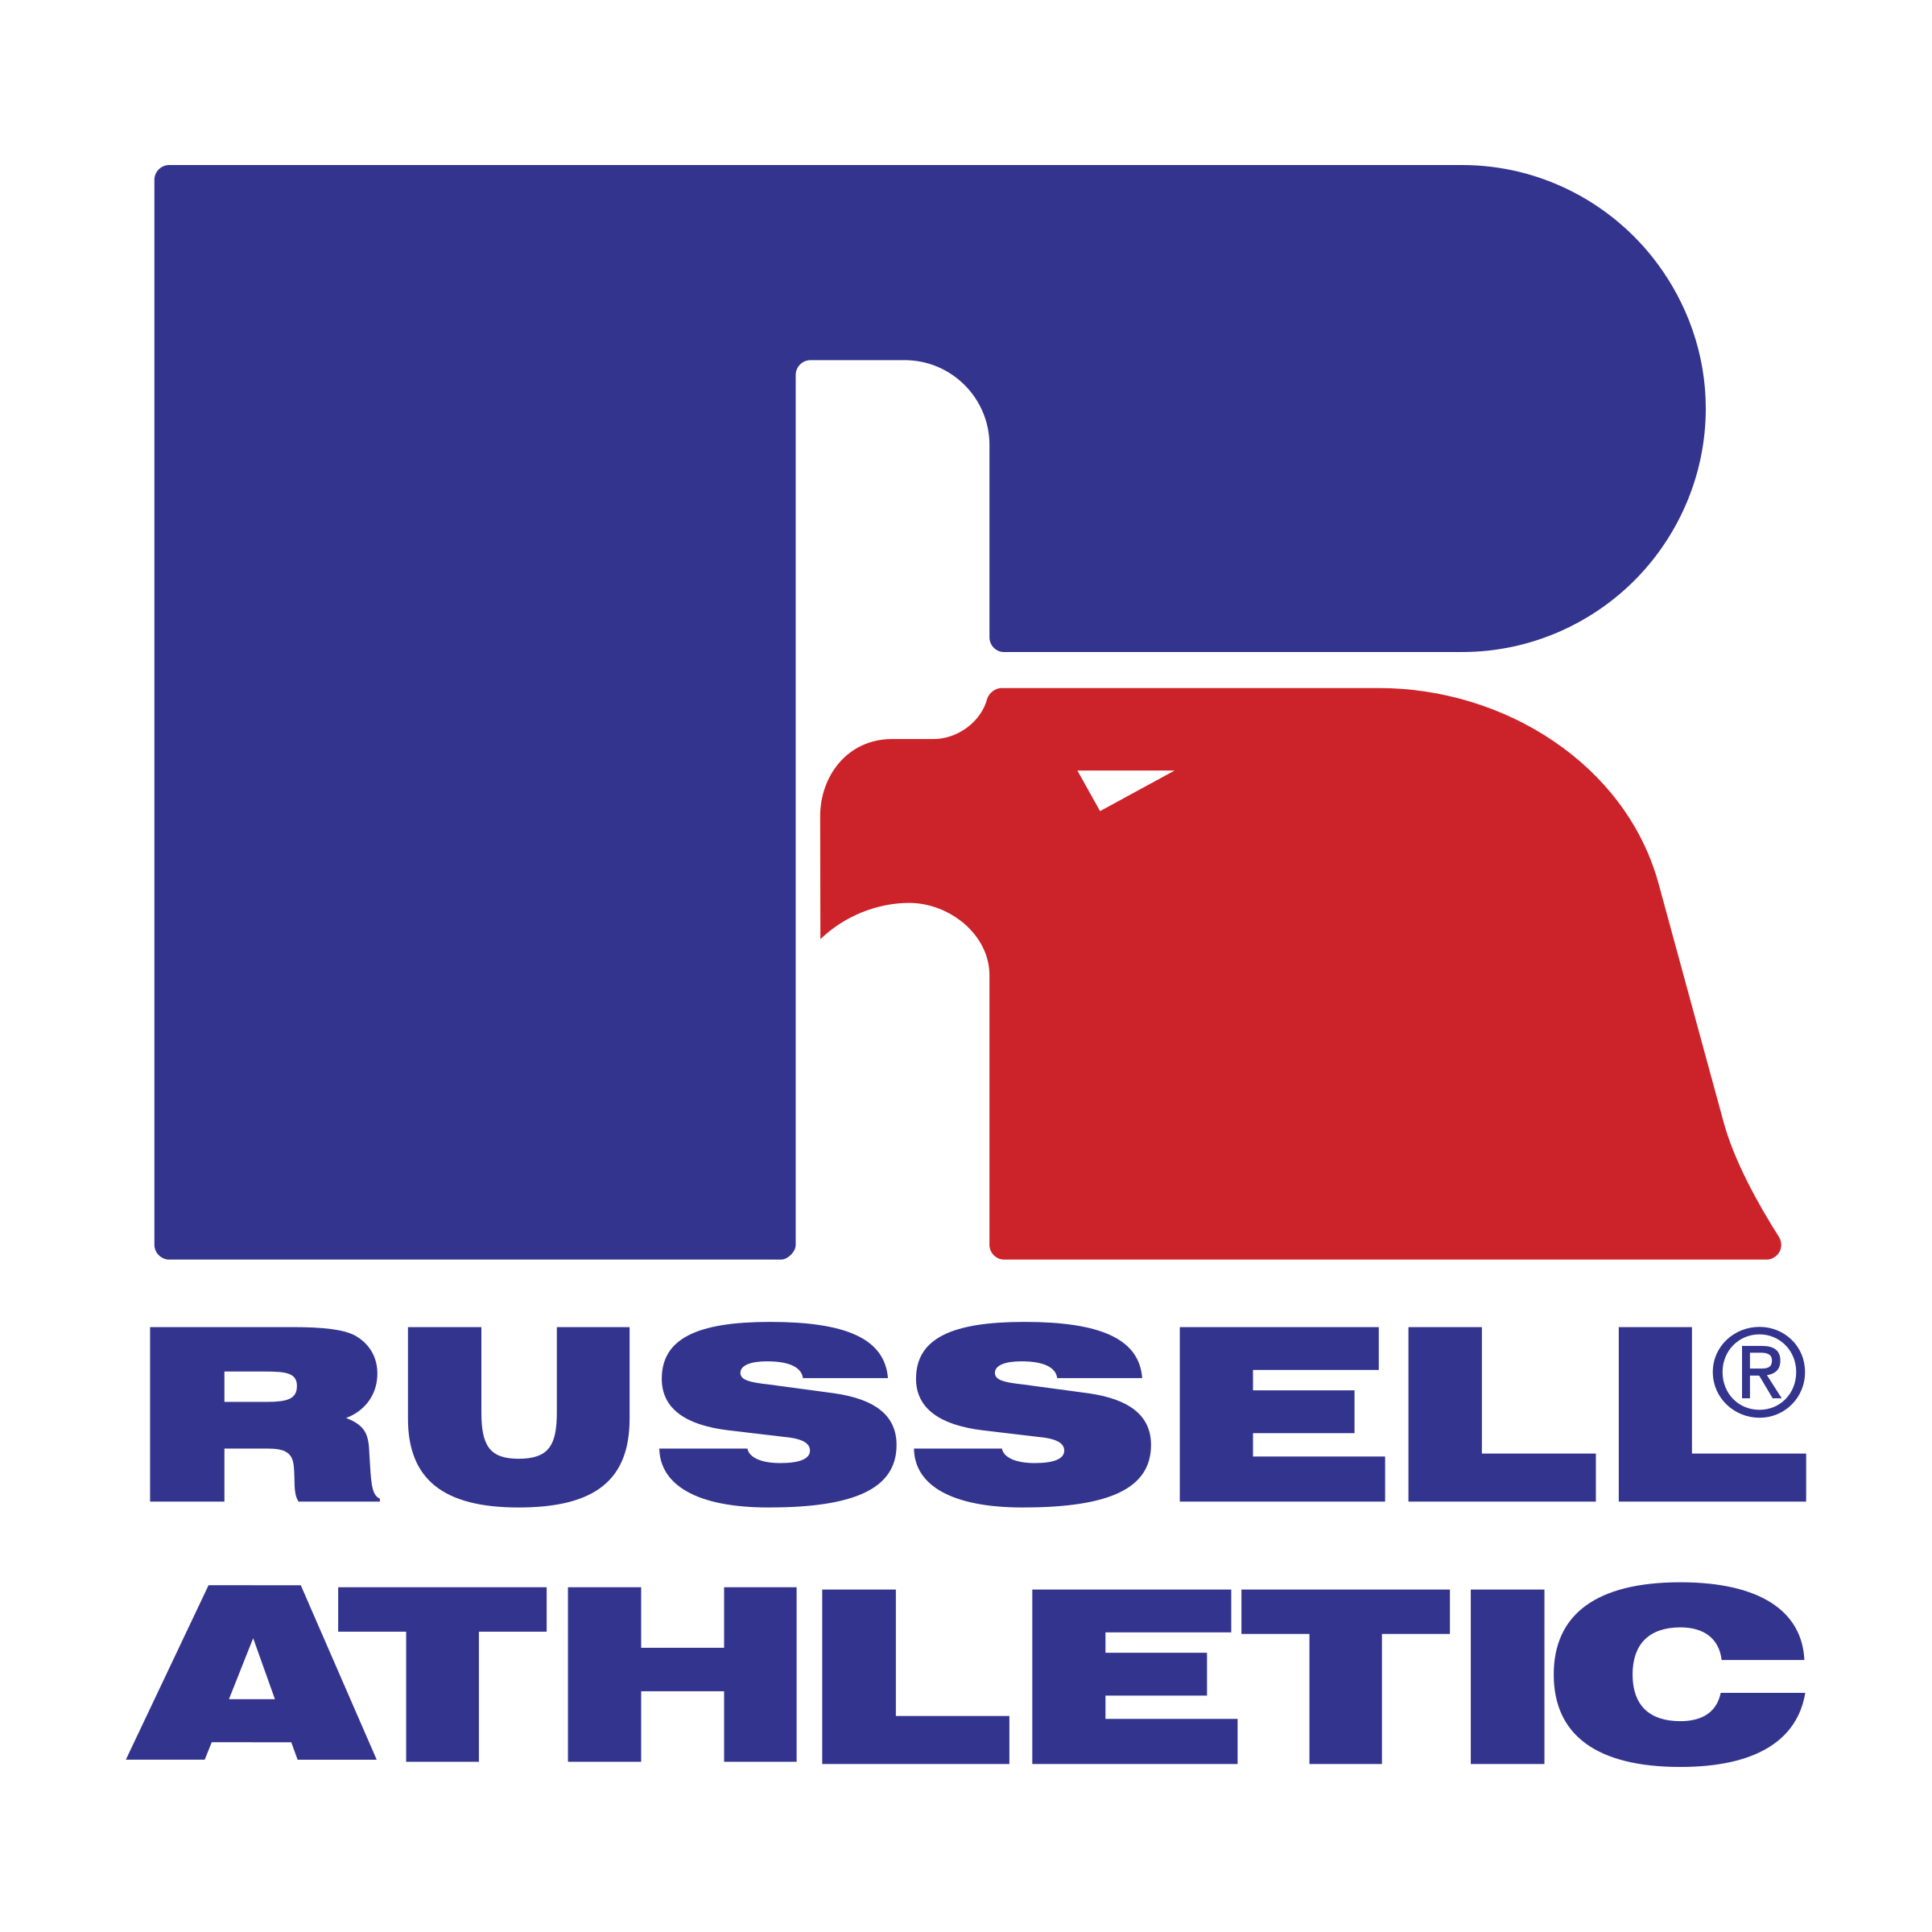 russell-athletic-1-logo-png-transparent